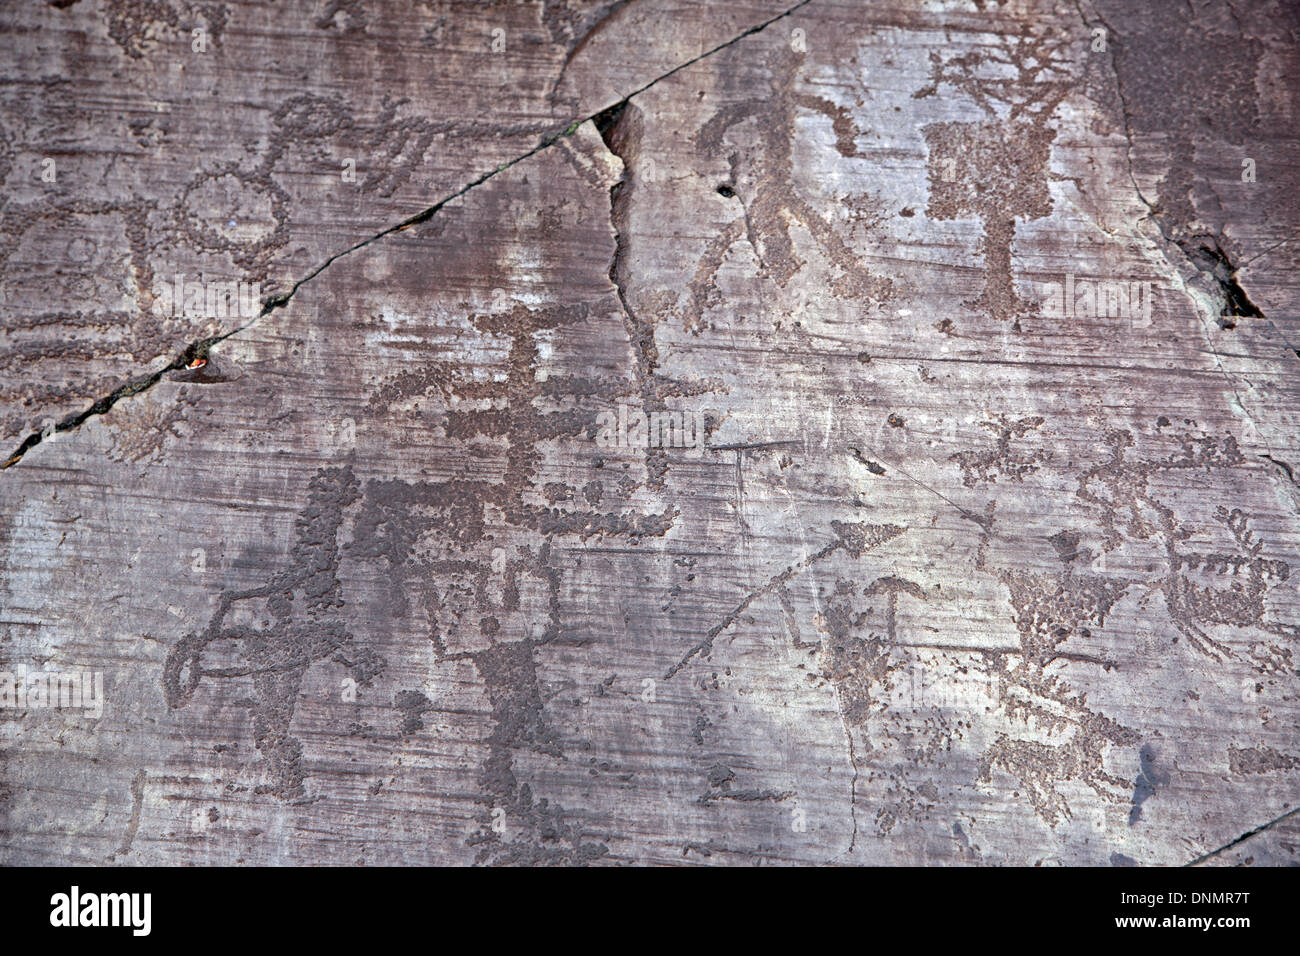 Rock drawings in valcamonica italy lombardy province